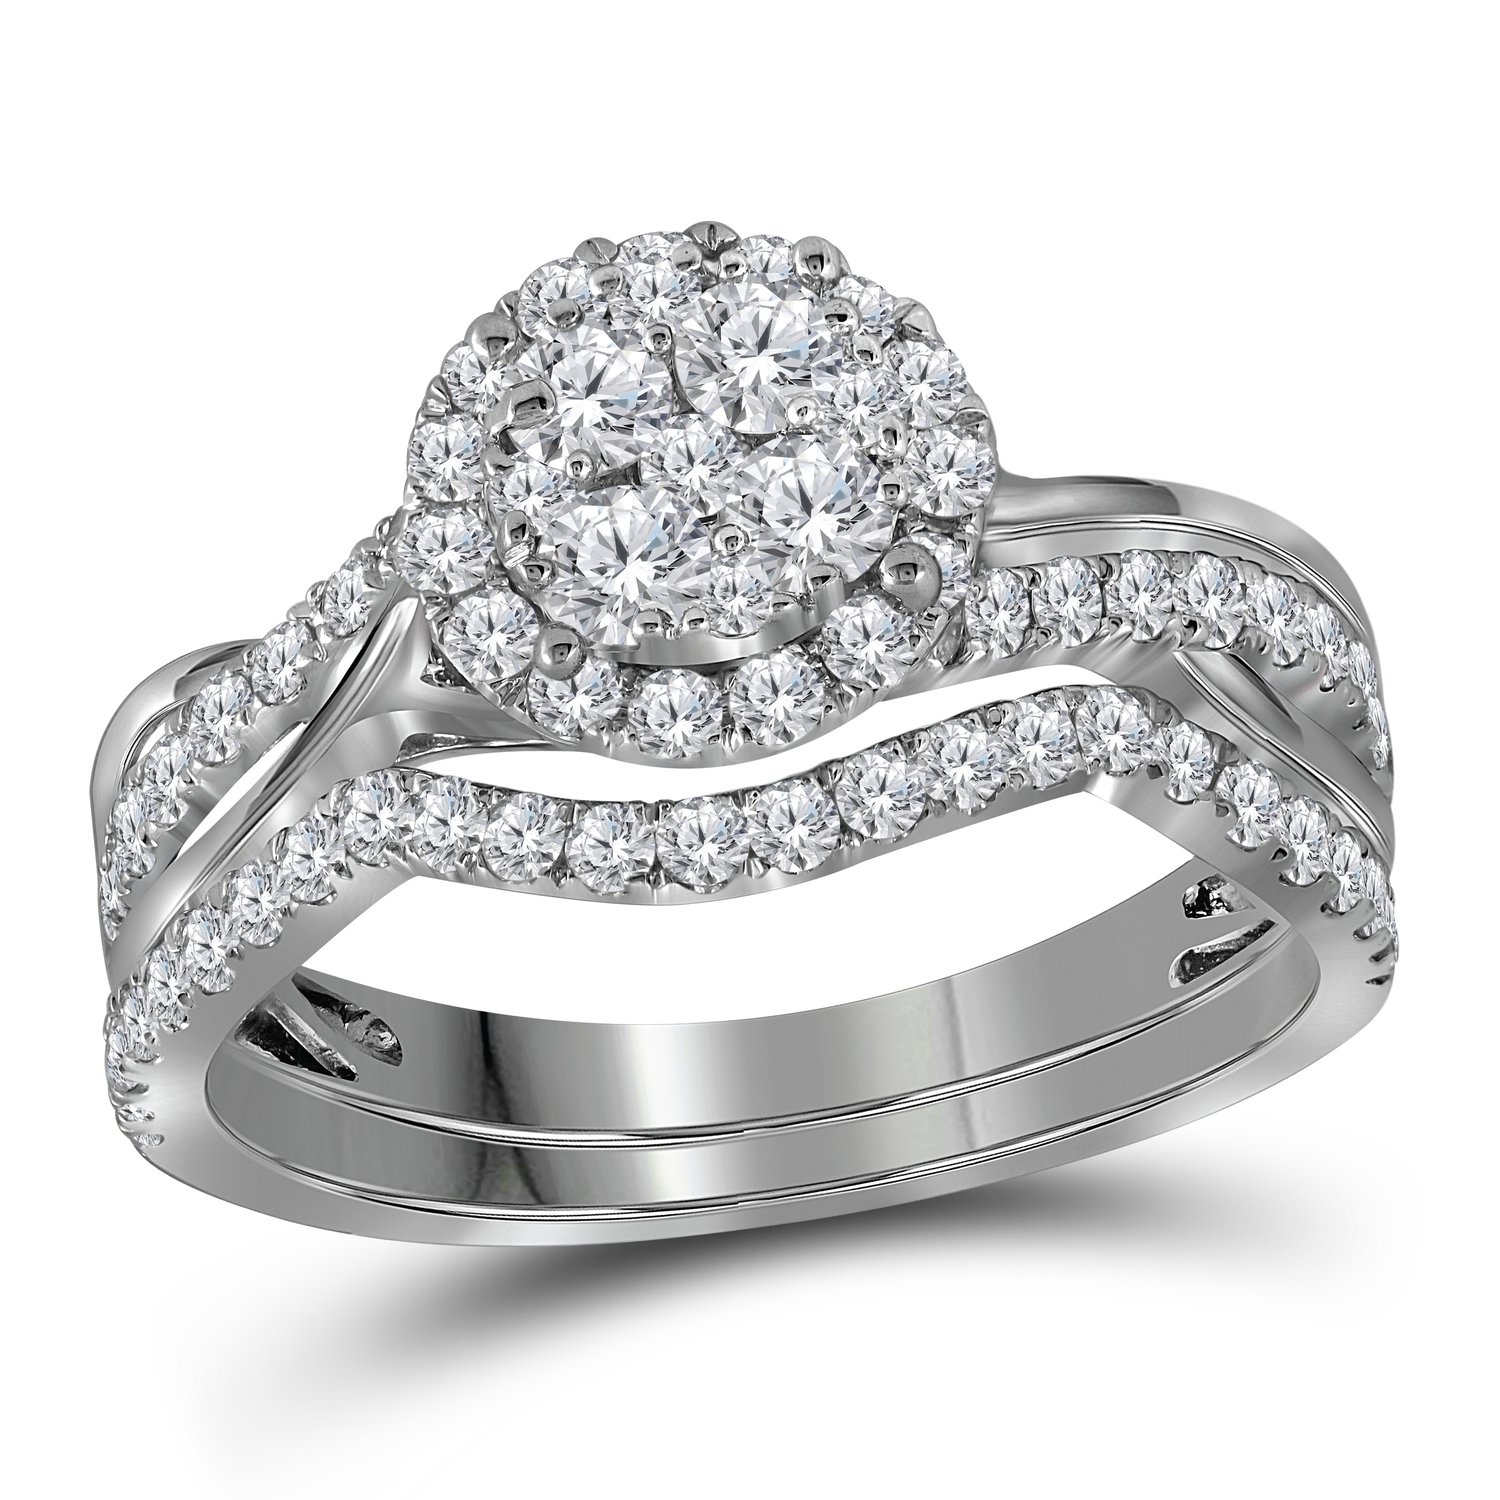 Magical Night Collection diamond ring 1 ctw. 14kt 116077